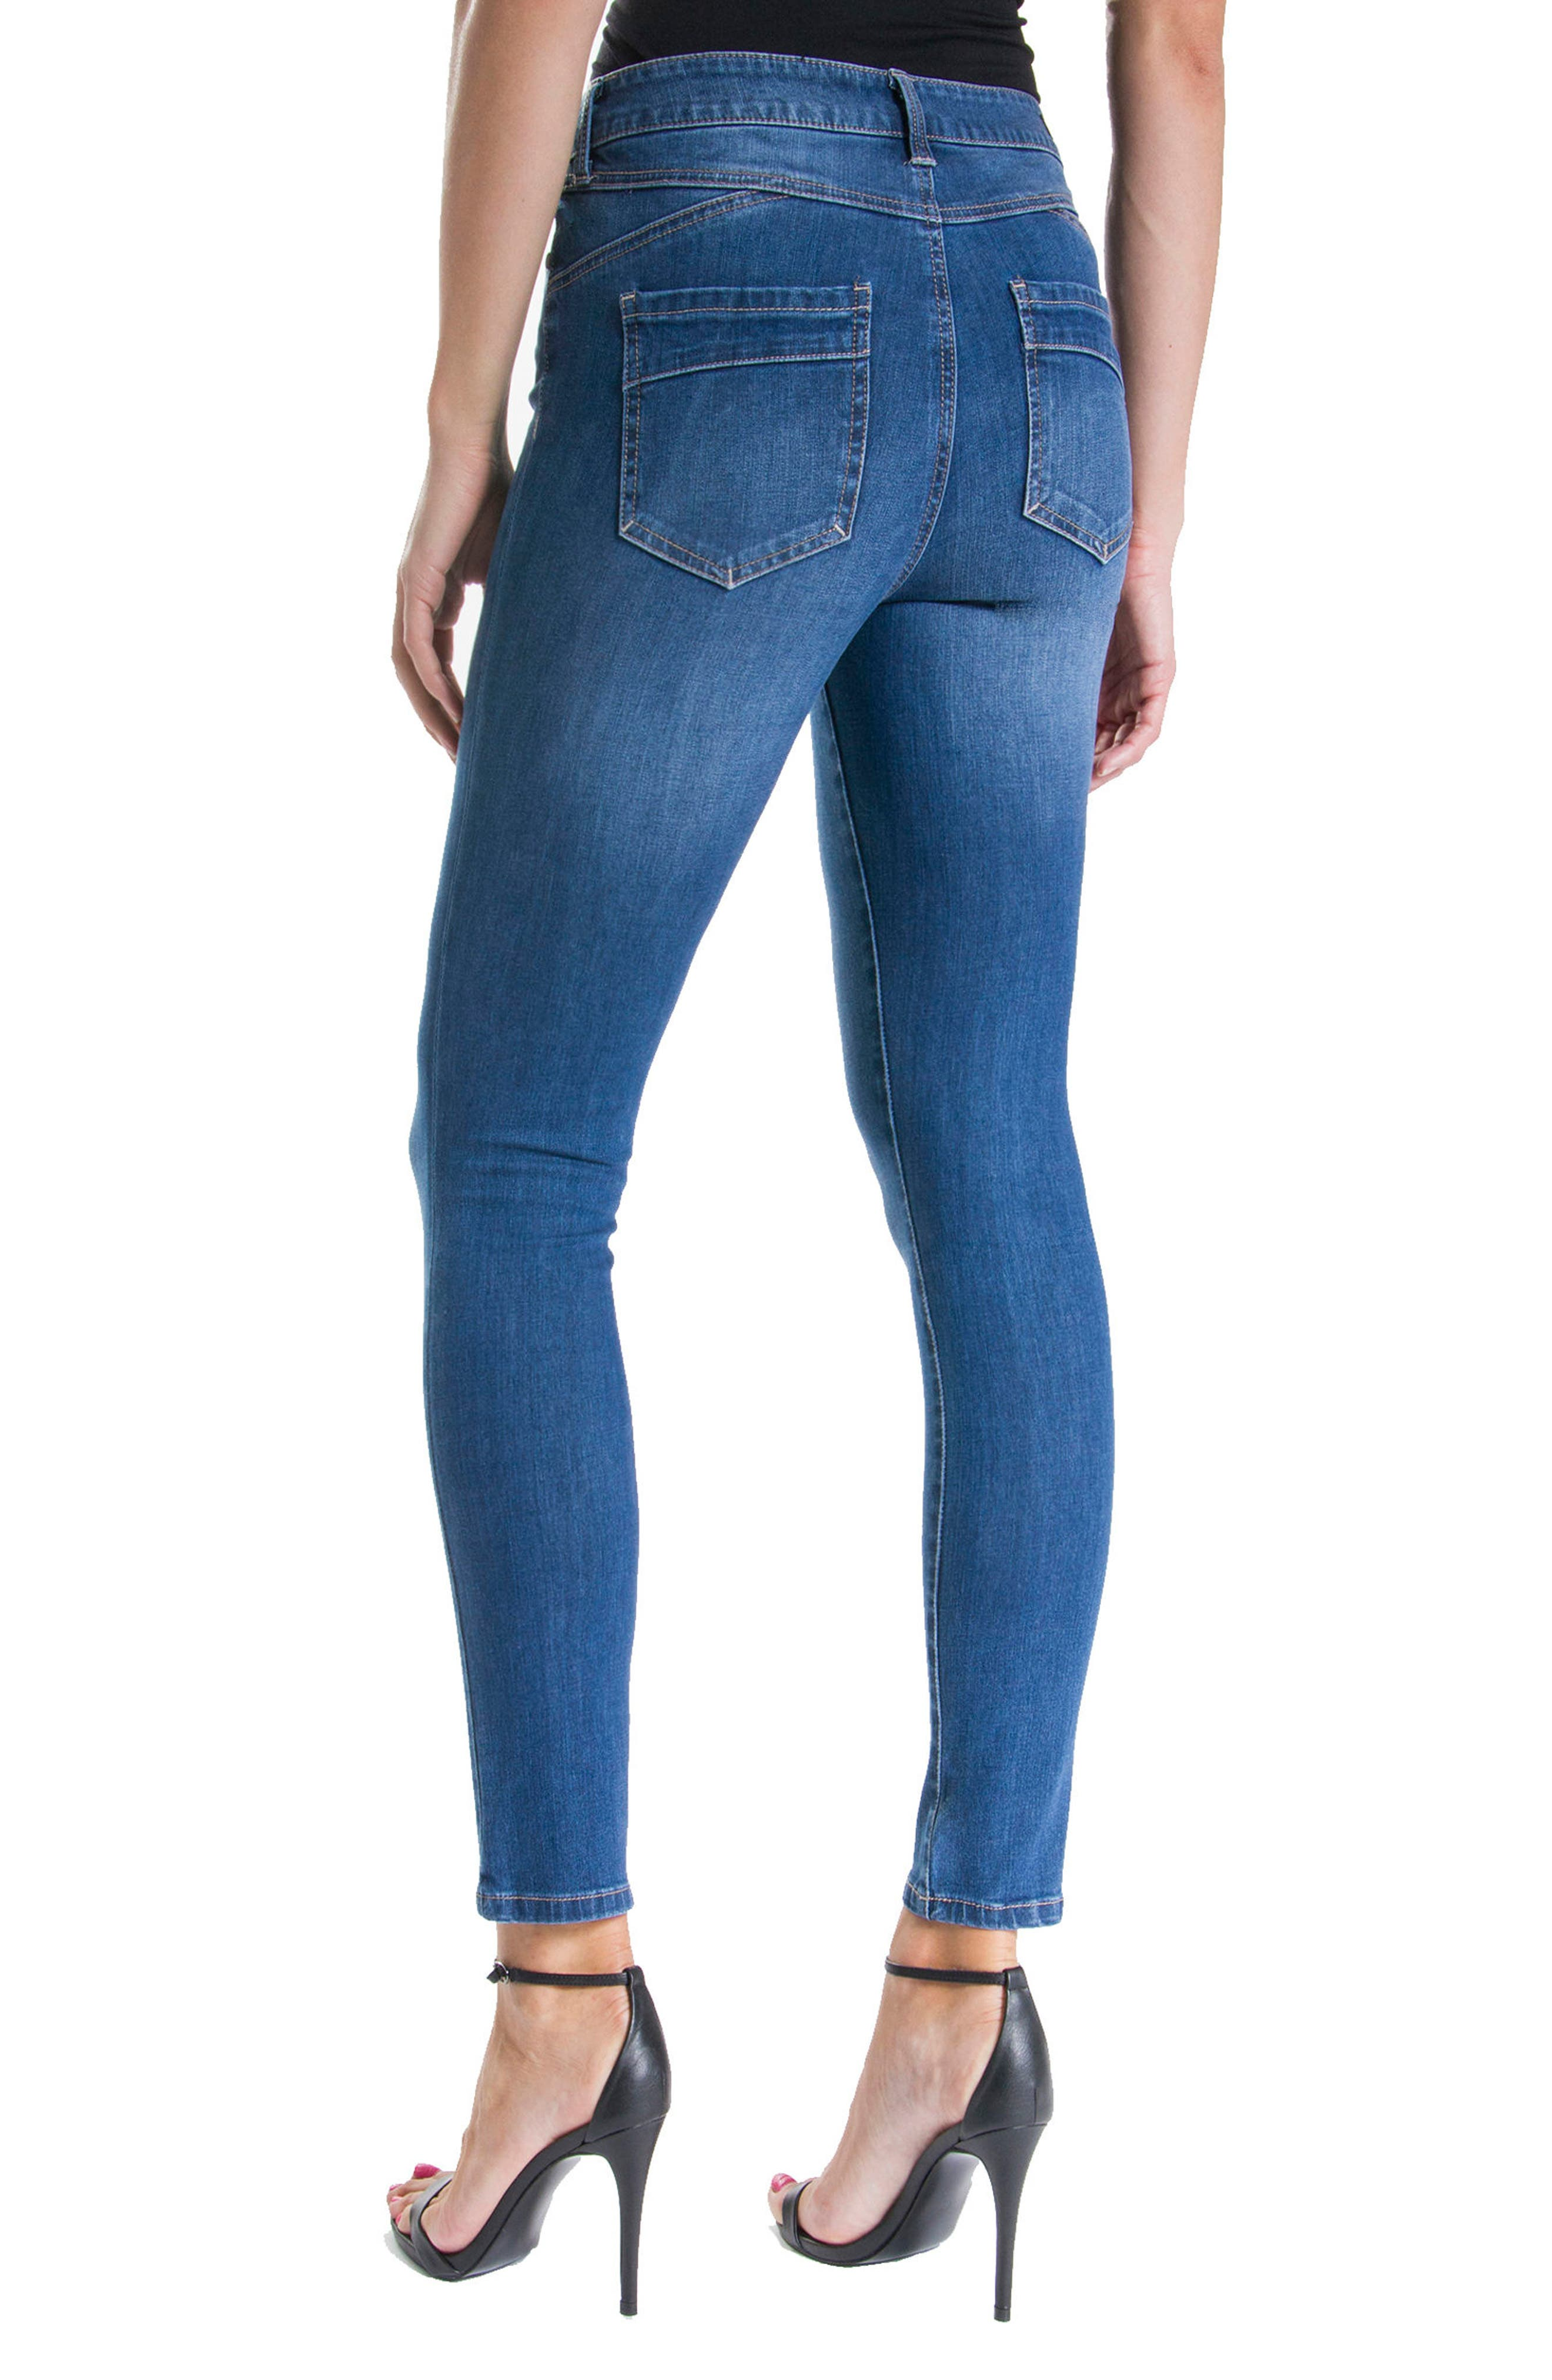 Alternate Image 3  - Liverpool Jeans Company Piper Hugger Lift Sculpt Ankle Skinny Jeans (Hydra)